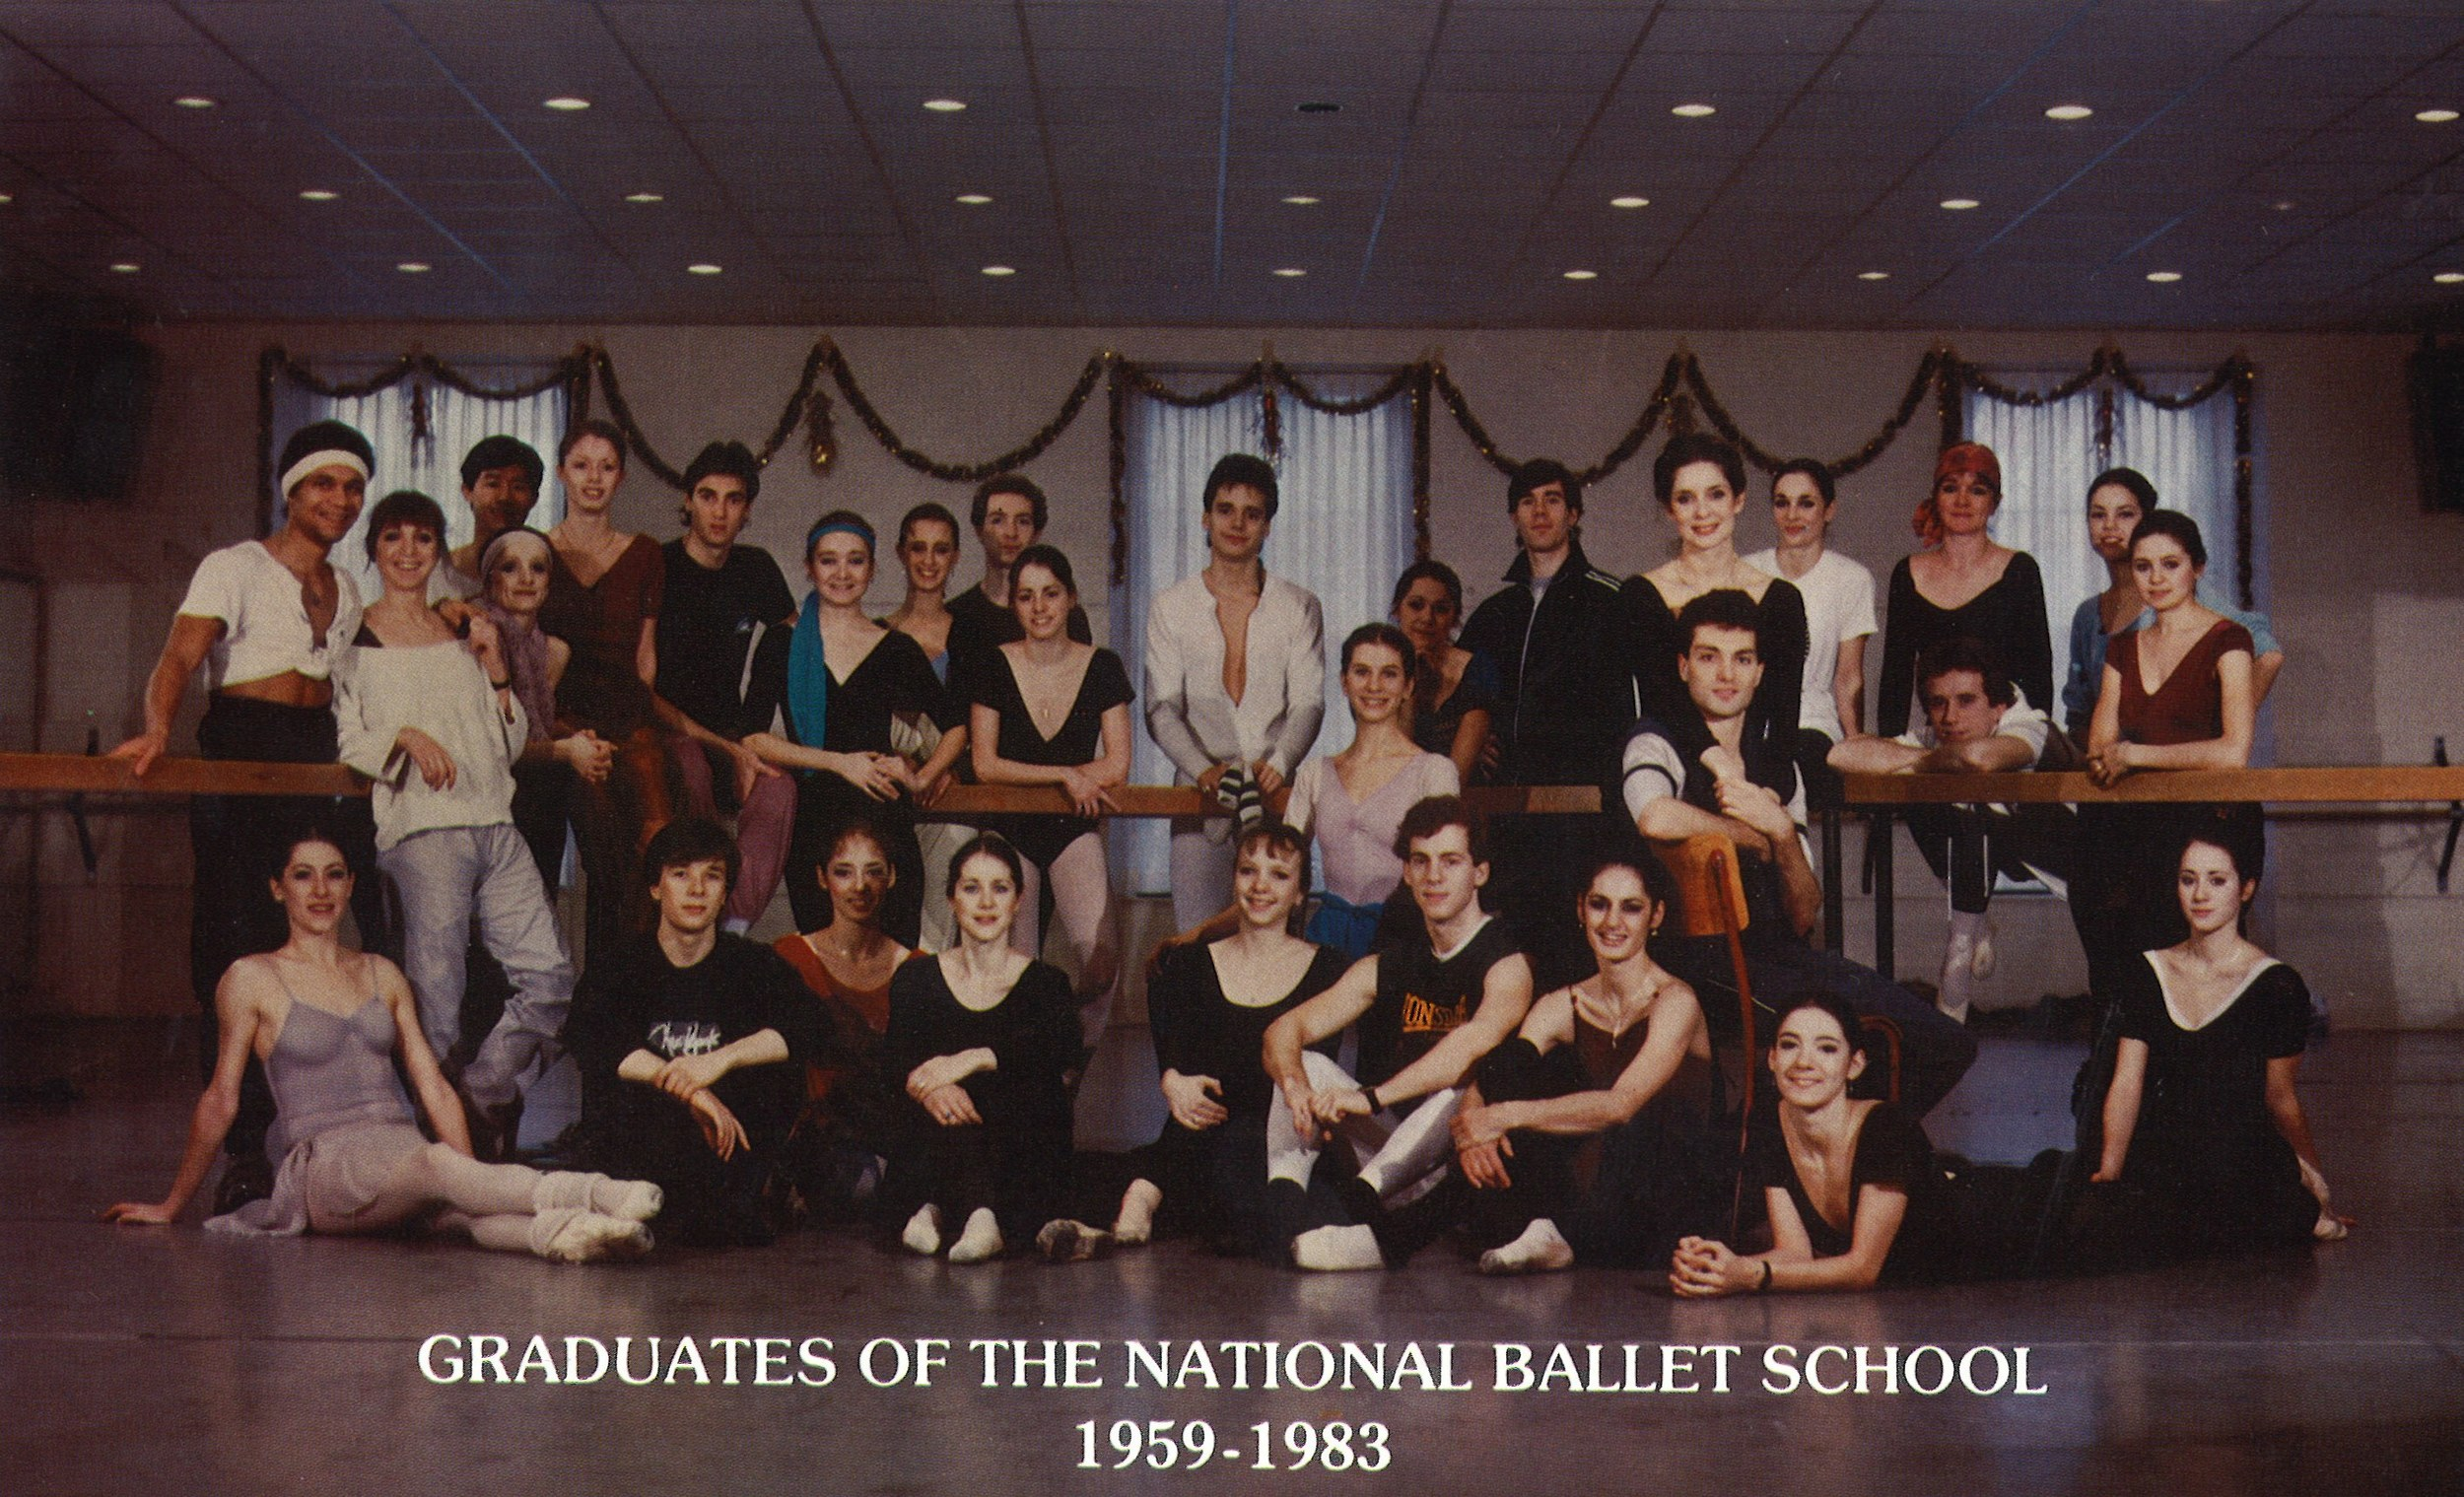 Graduates of Canada's National Ballet School from 1959-1983 gather to celebrate the School's 25th anniversary in 1984.